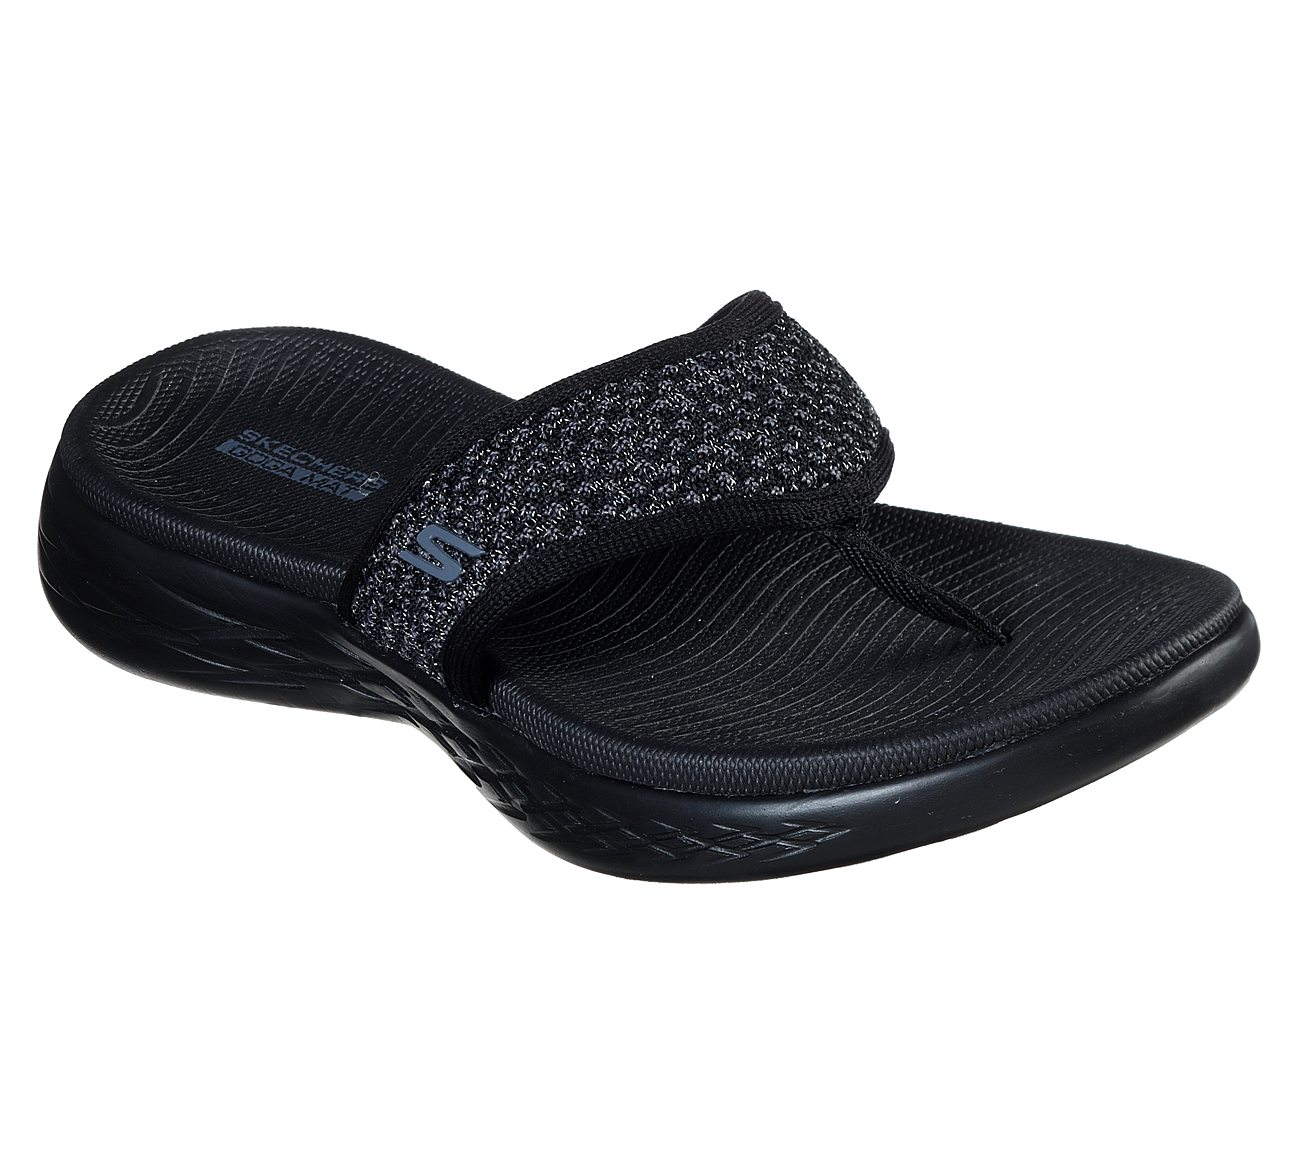 Skechers On the GO 600 - Glossy